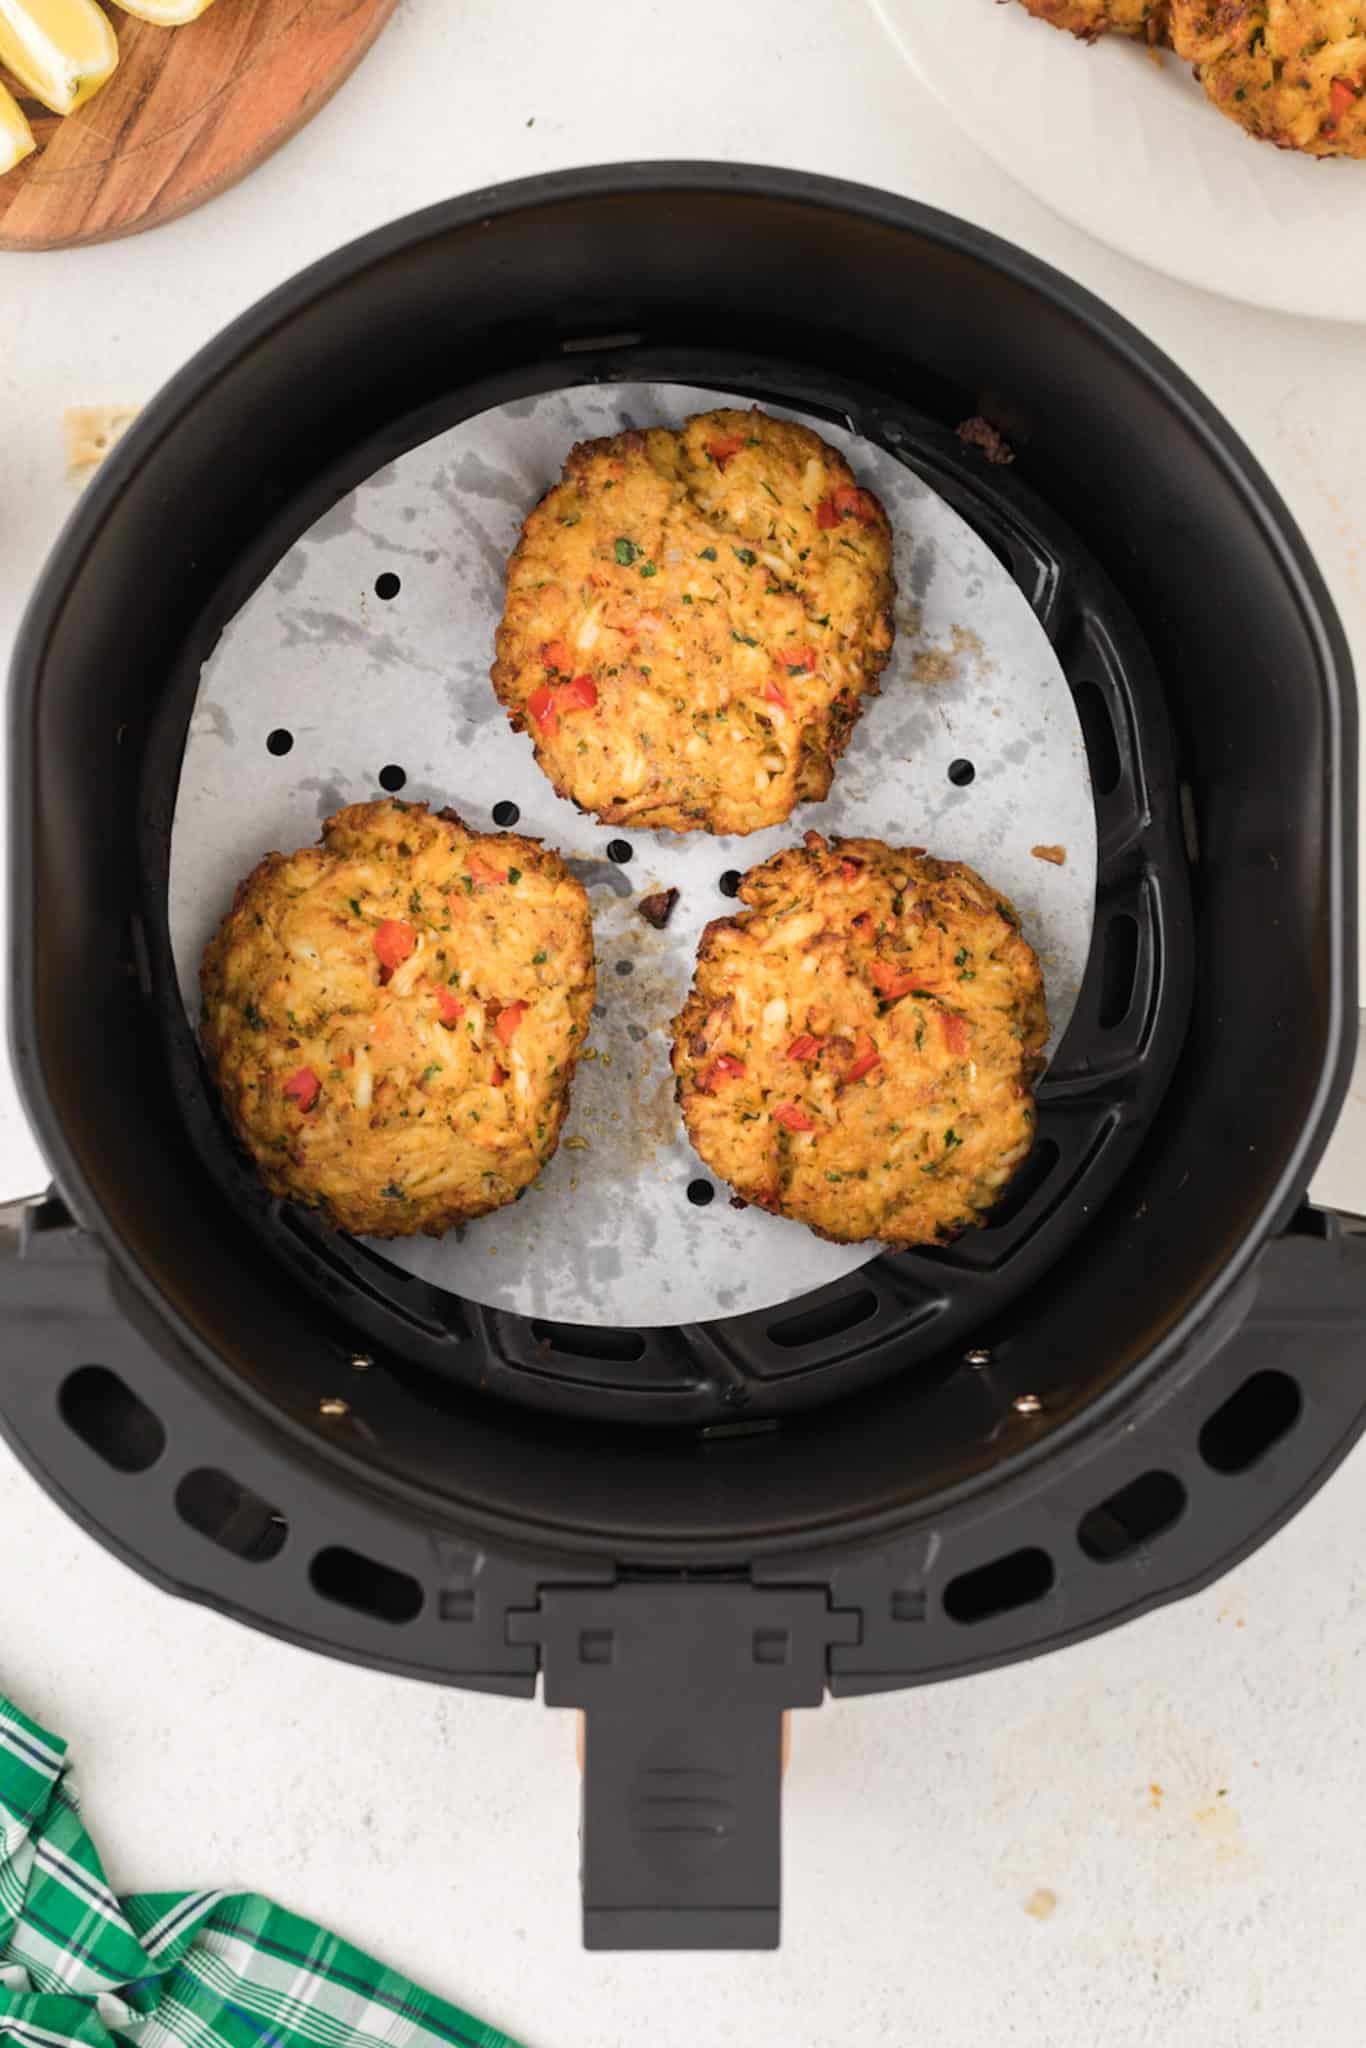 cooked crab cakes in an air fryer